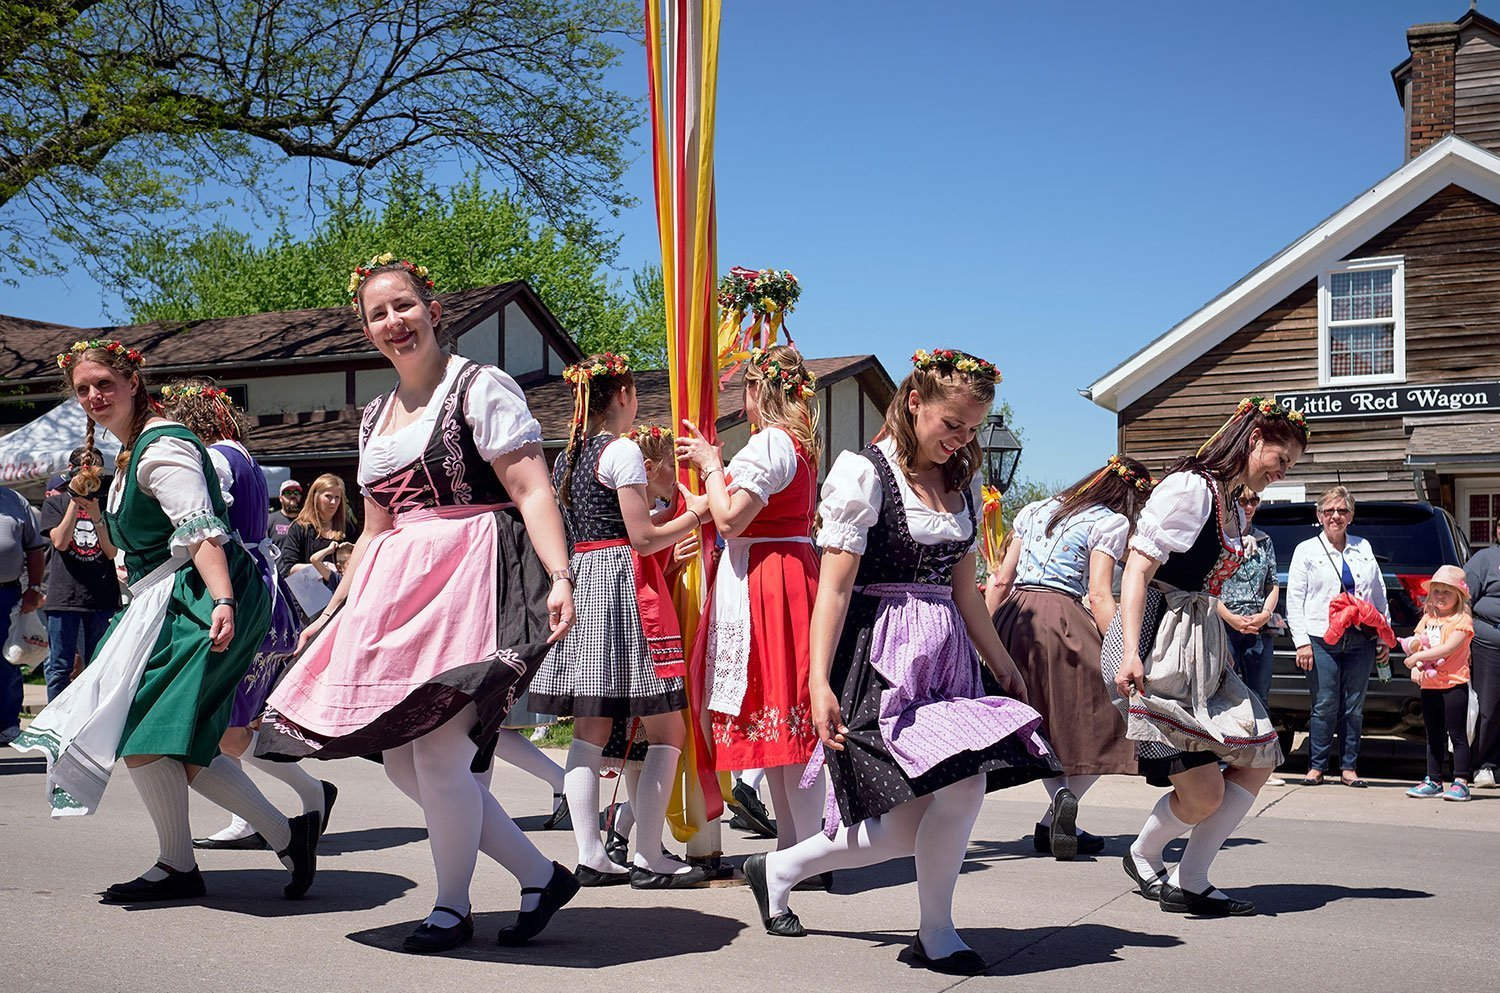 Women perform the ceremonial folk Maypole dance around a tall pole garlanded at Amana Colonies in Iowa